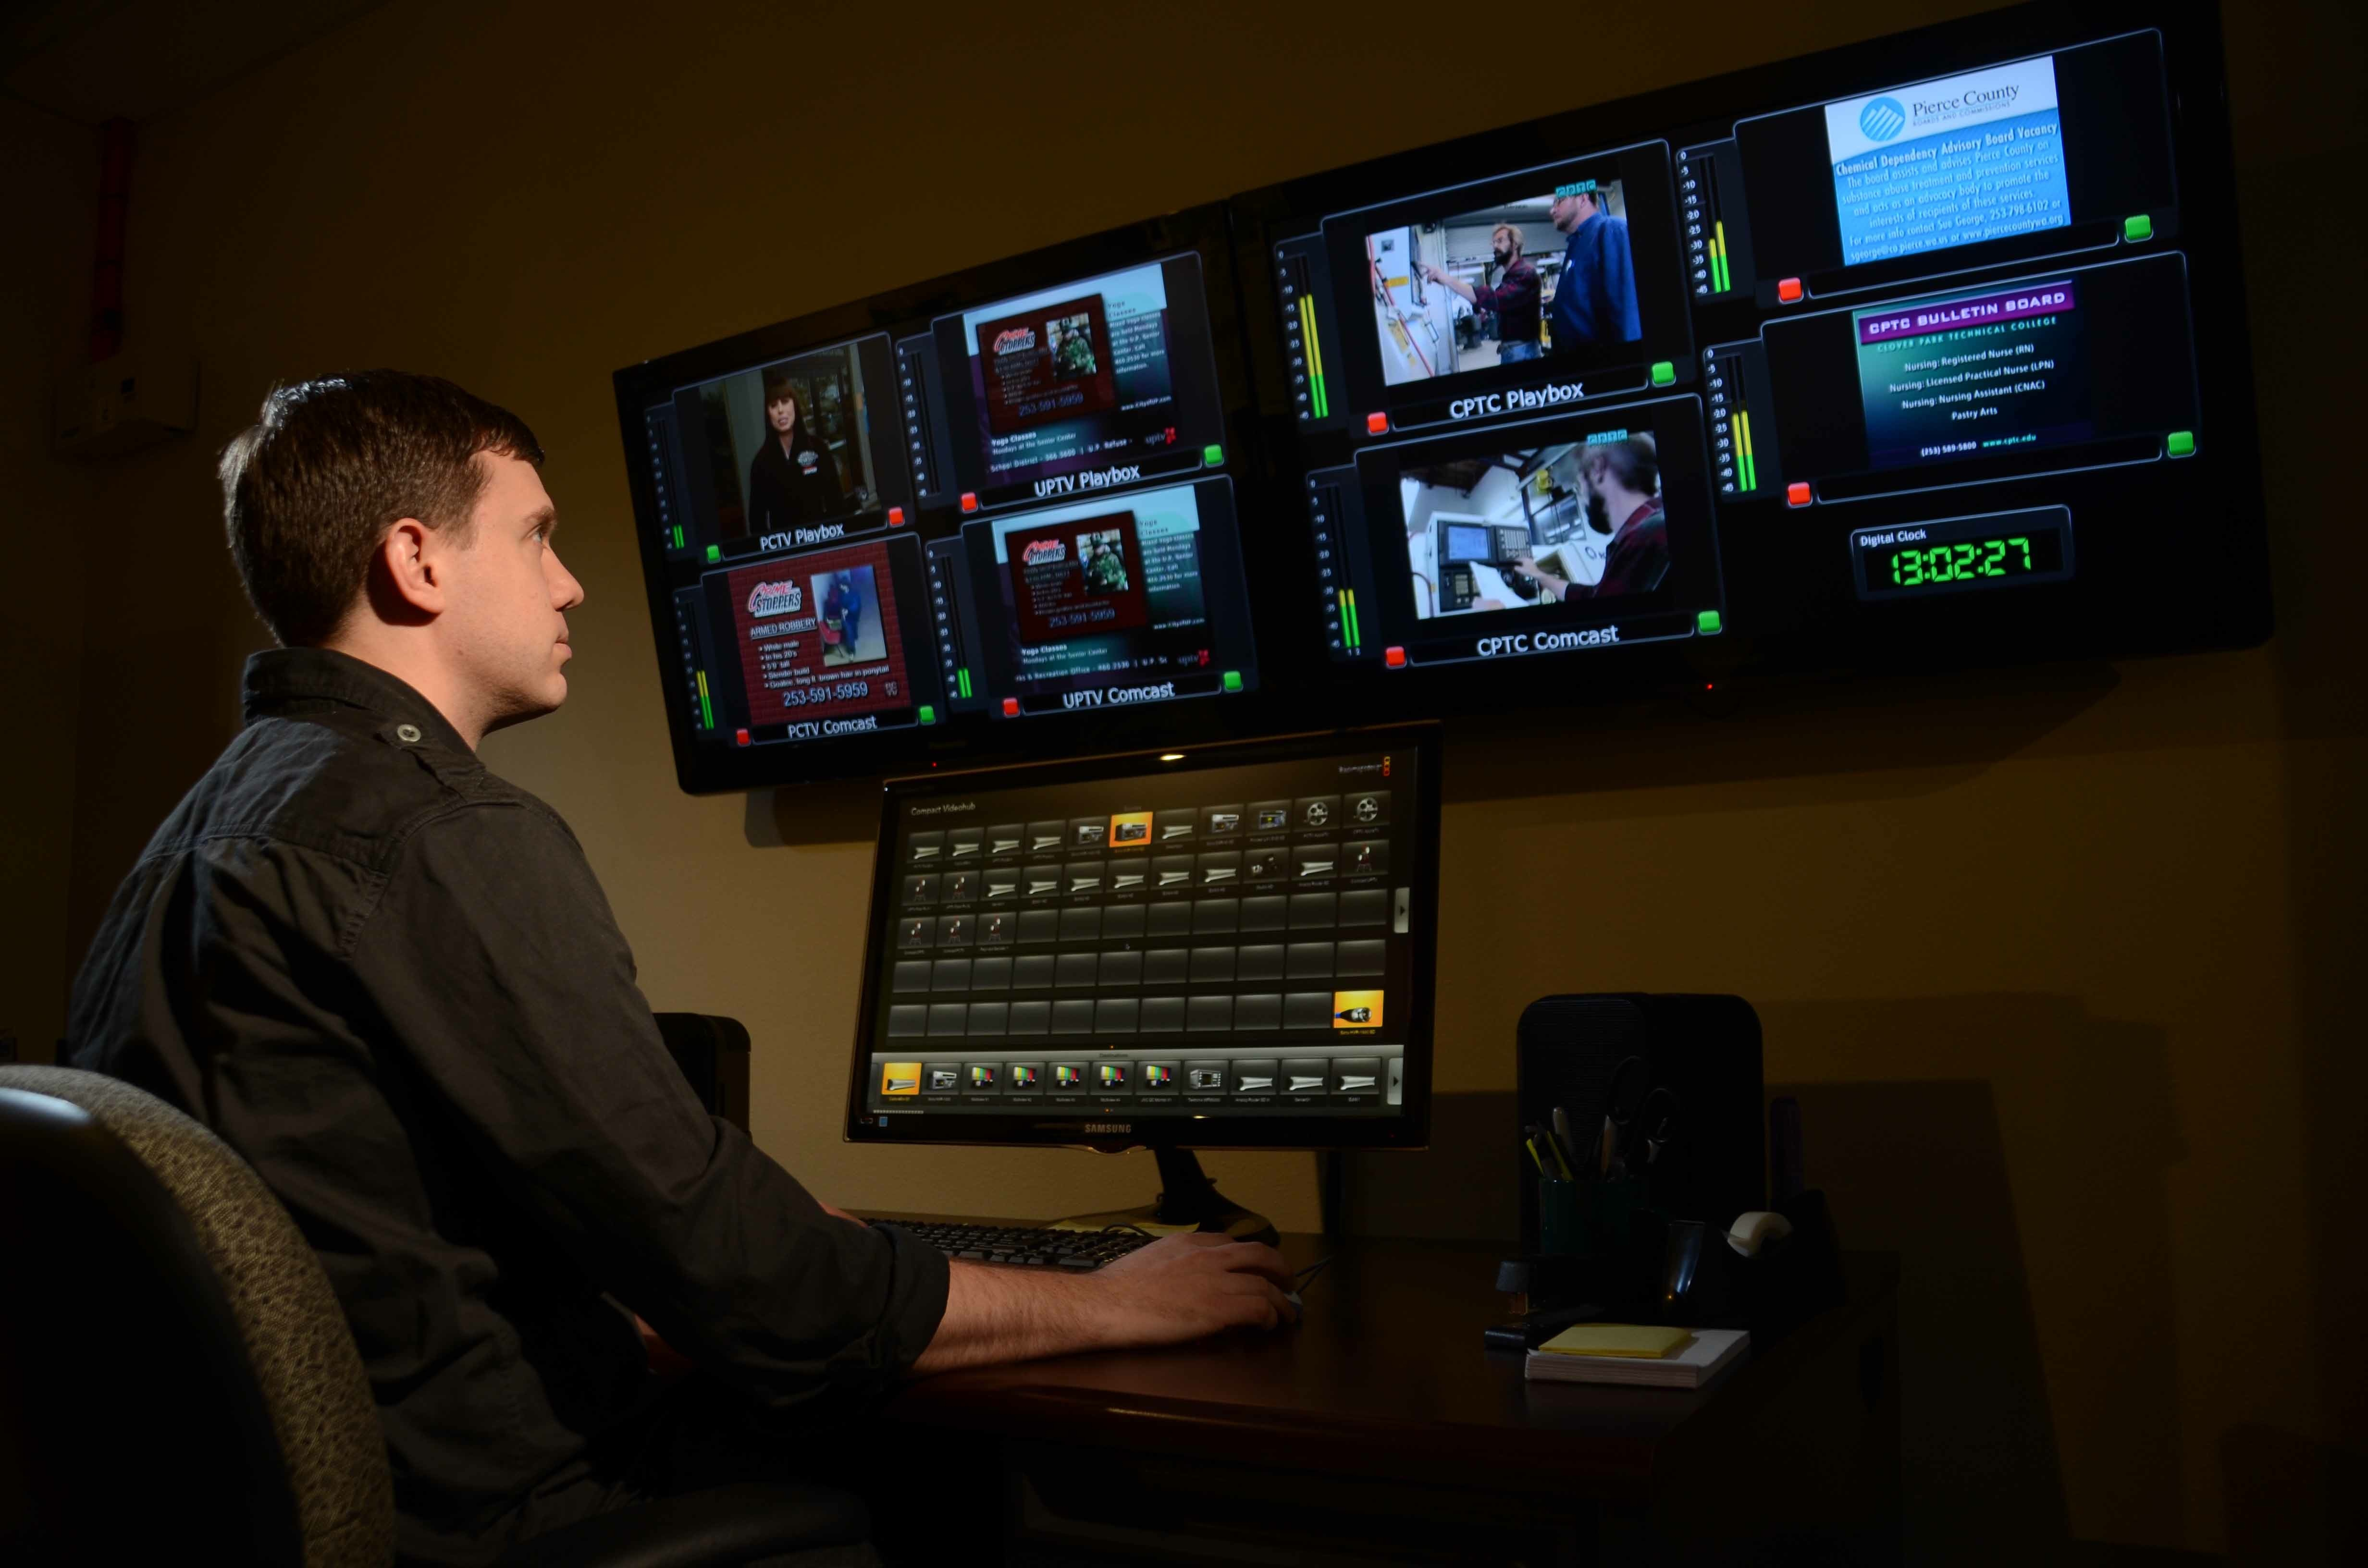 Abs Updates Pierce County Tv Master Control To Support Third Channel